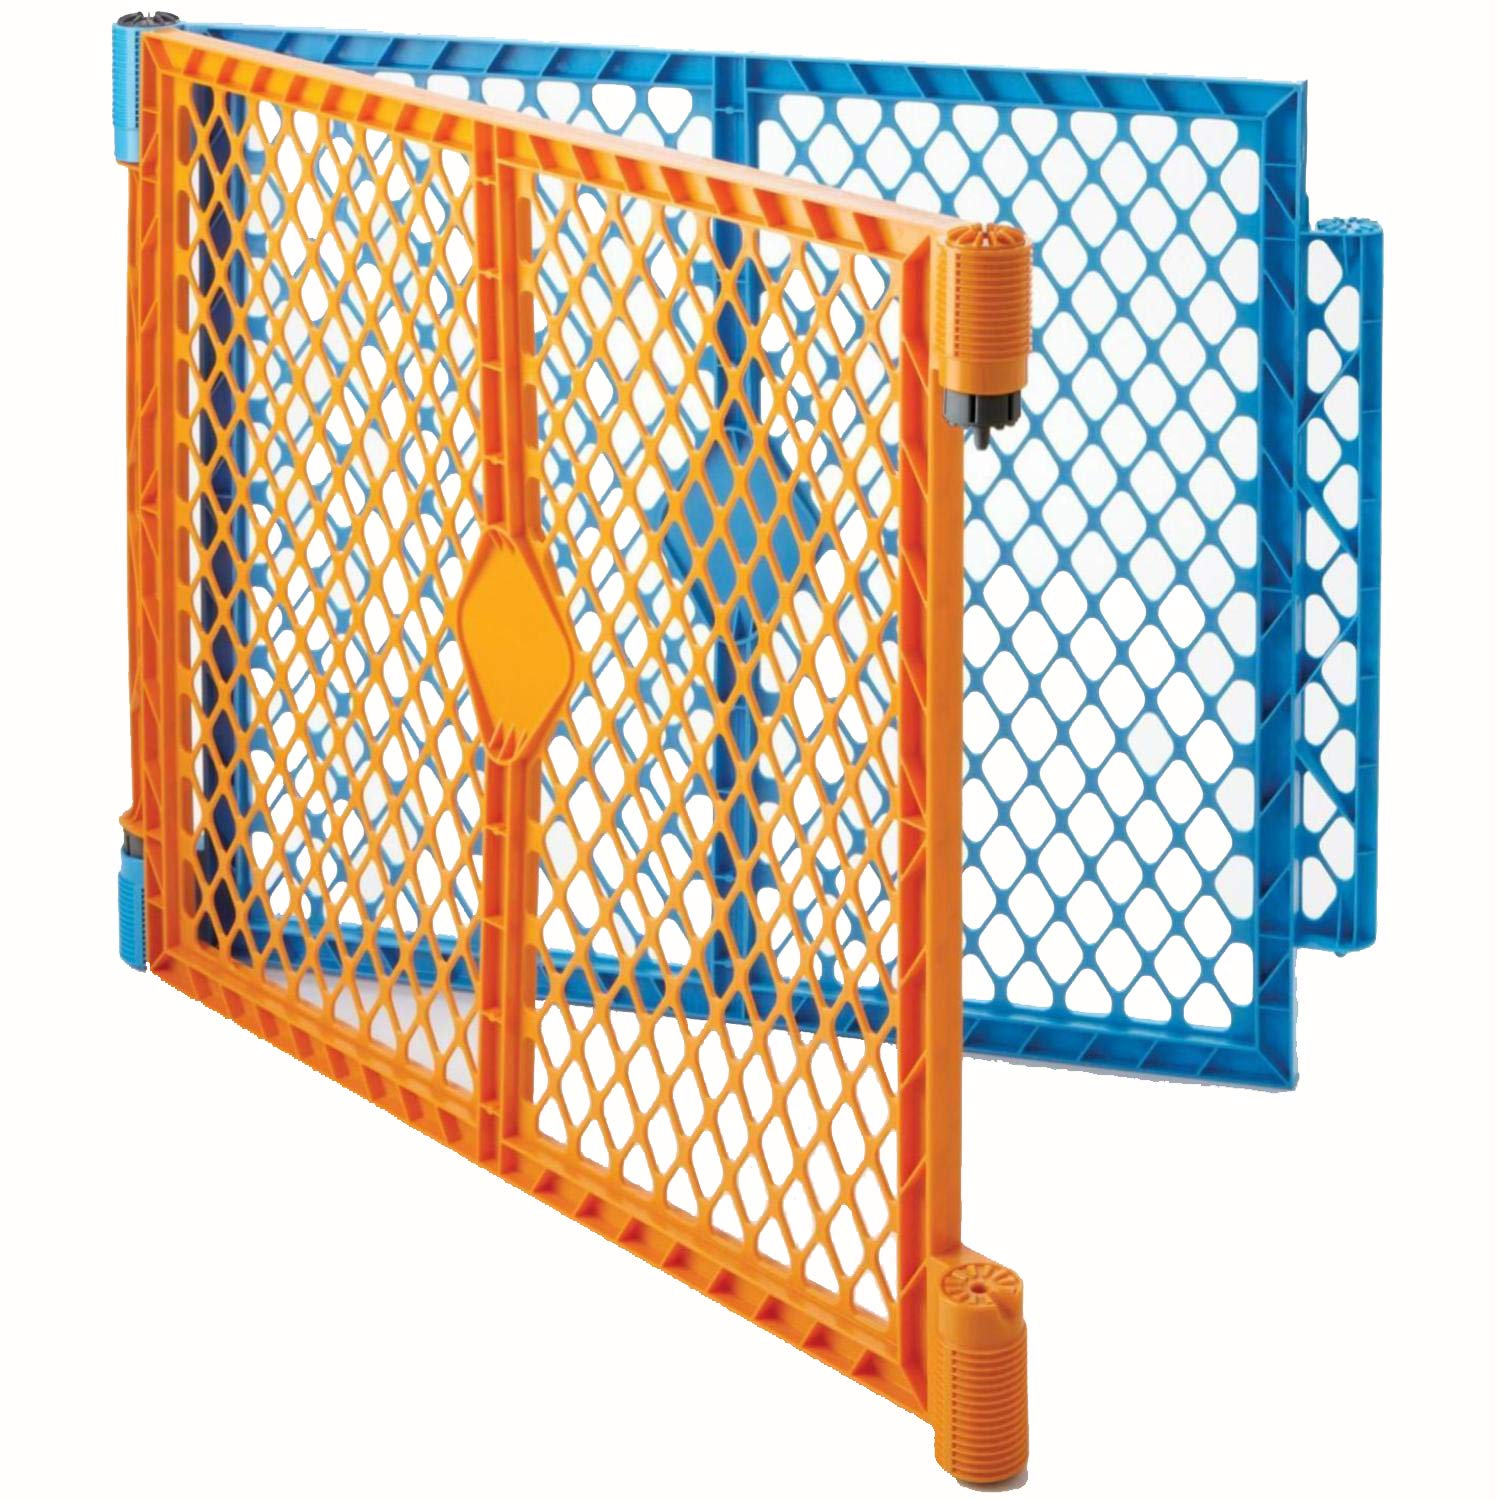 North States 2-Panel Extension for Multicolor Superyard Colorplay or Superyard Colorplay Ultimate Increases Play Space up to 34.4 sq. ft. Adds 64 , Multicolor